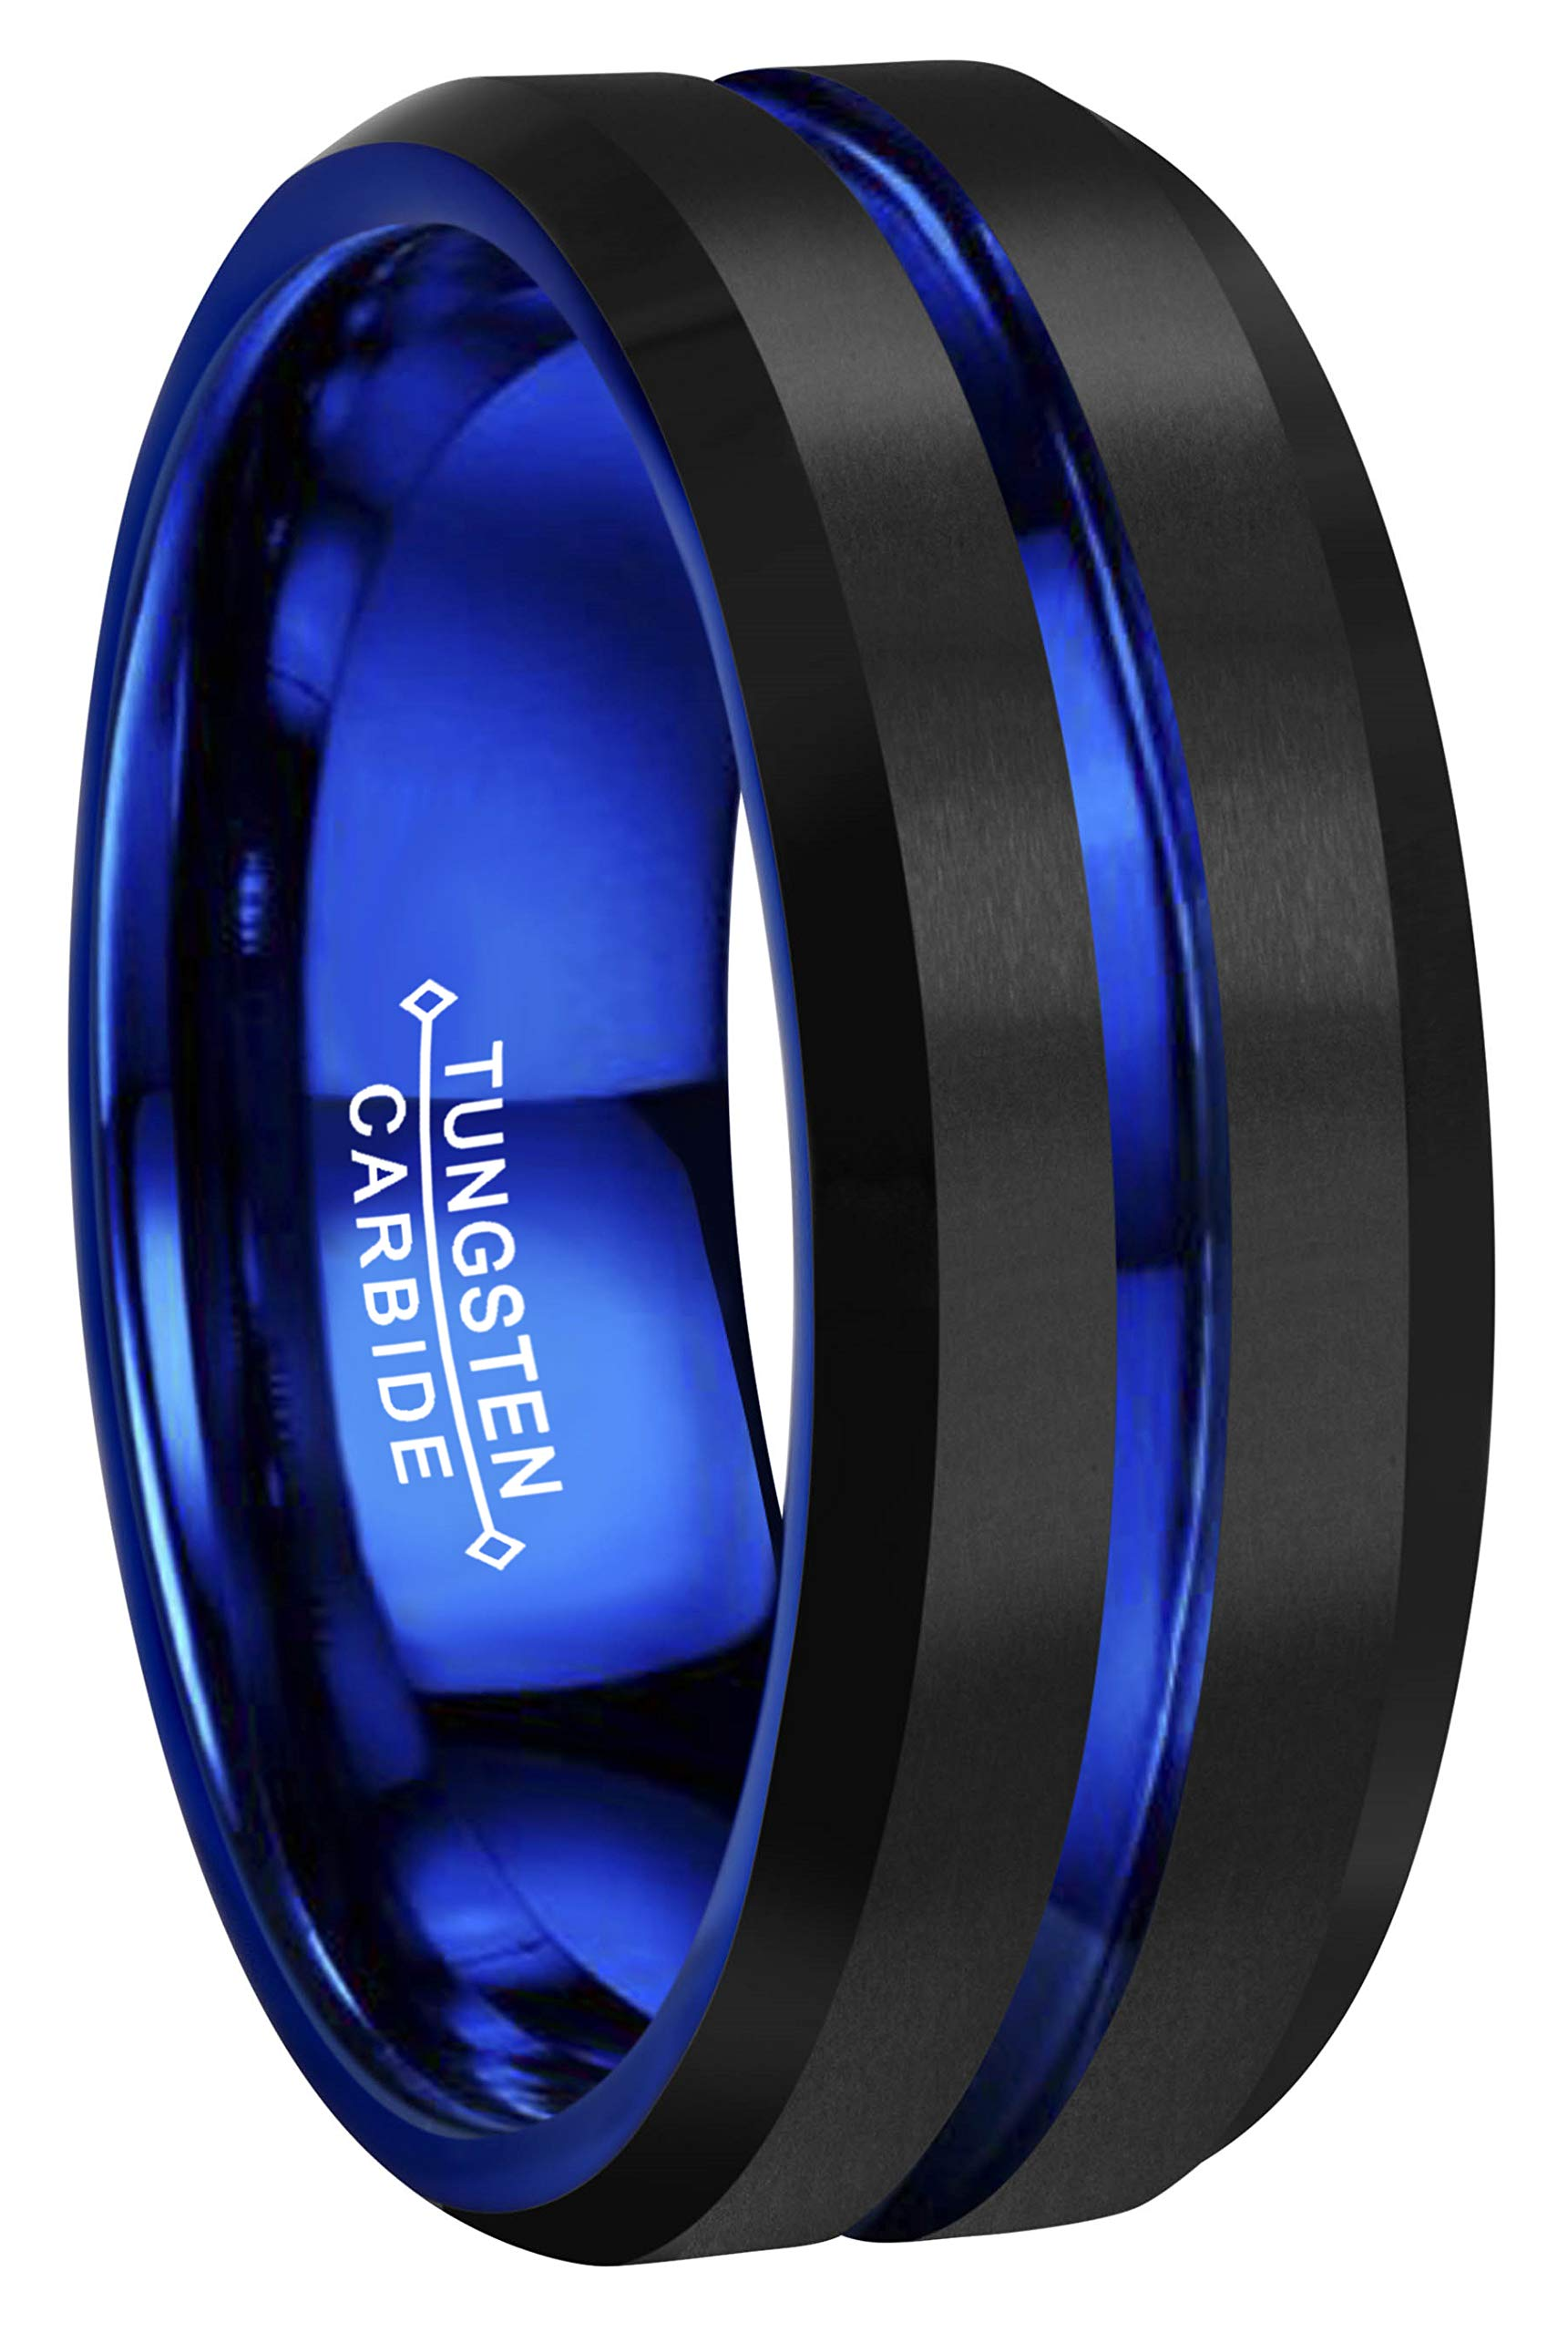 RoyalKay 8mm Black Blue Tungsten Wedding Band Ring Men Women Blue Groove Matte Finish Comfort Fit Size 6 to 17 (8mm,8.5)